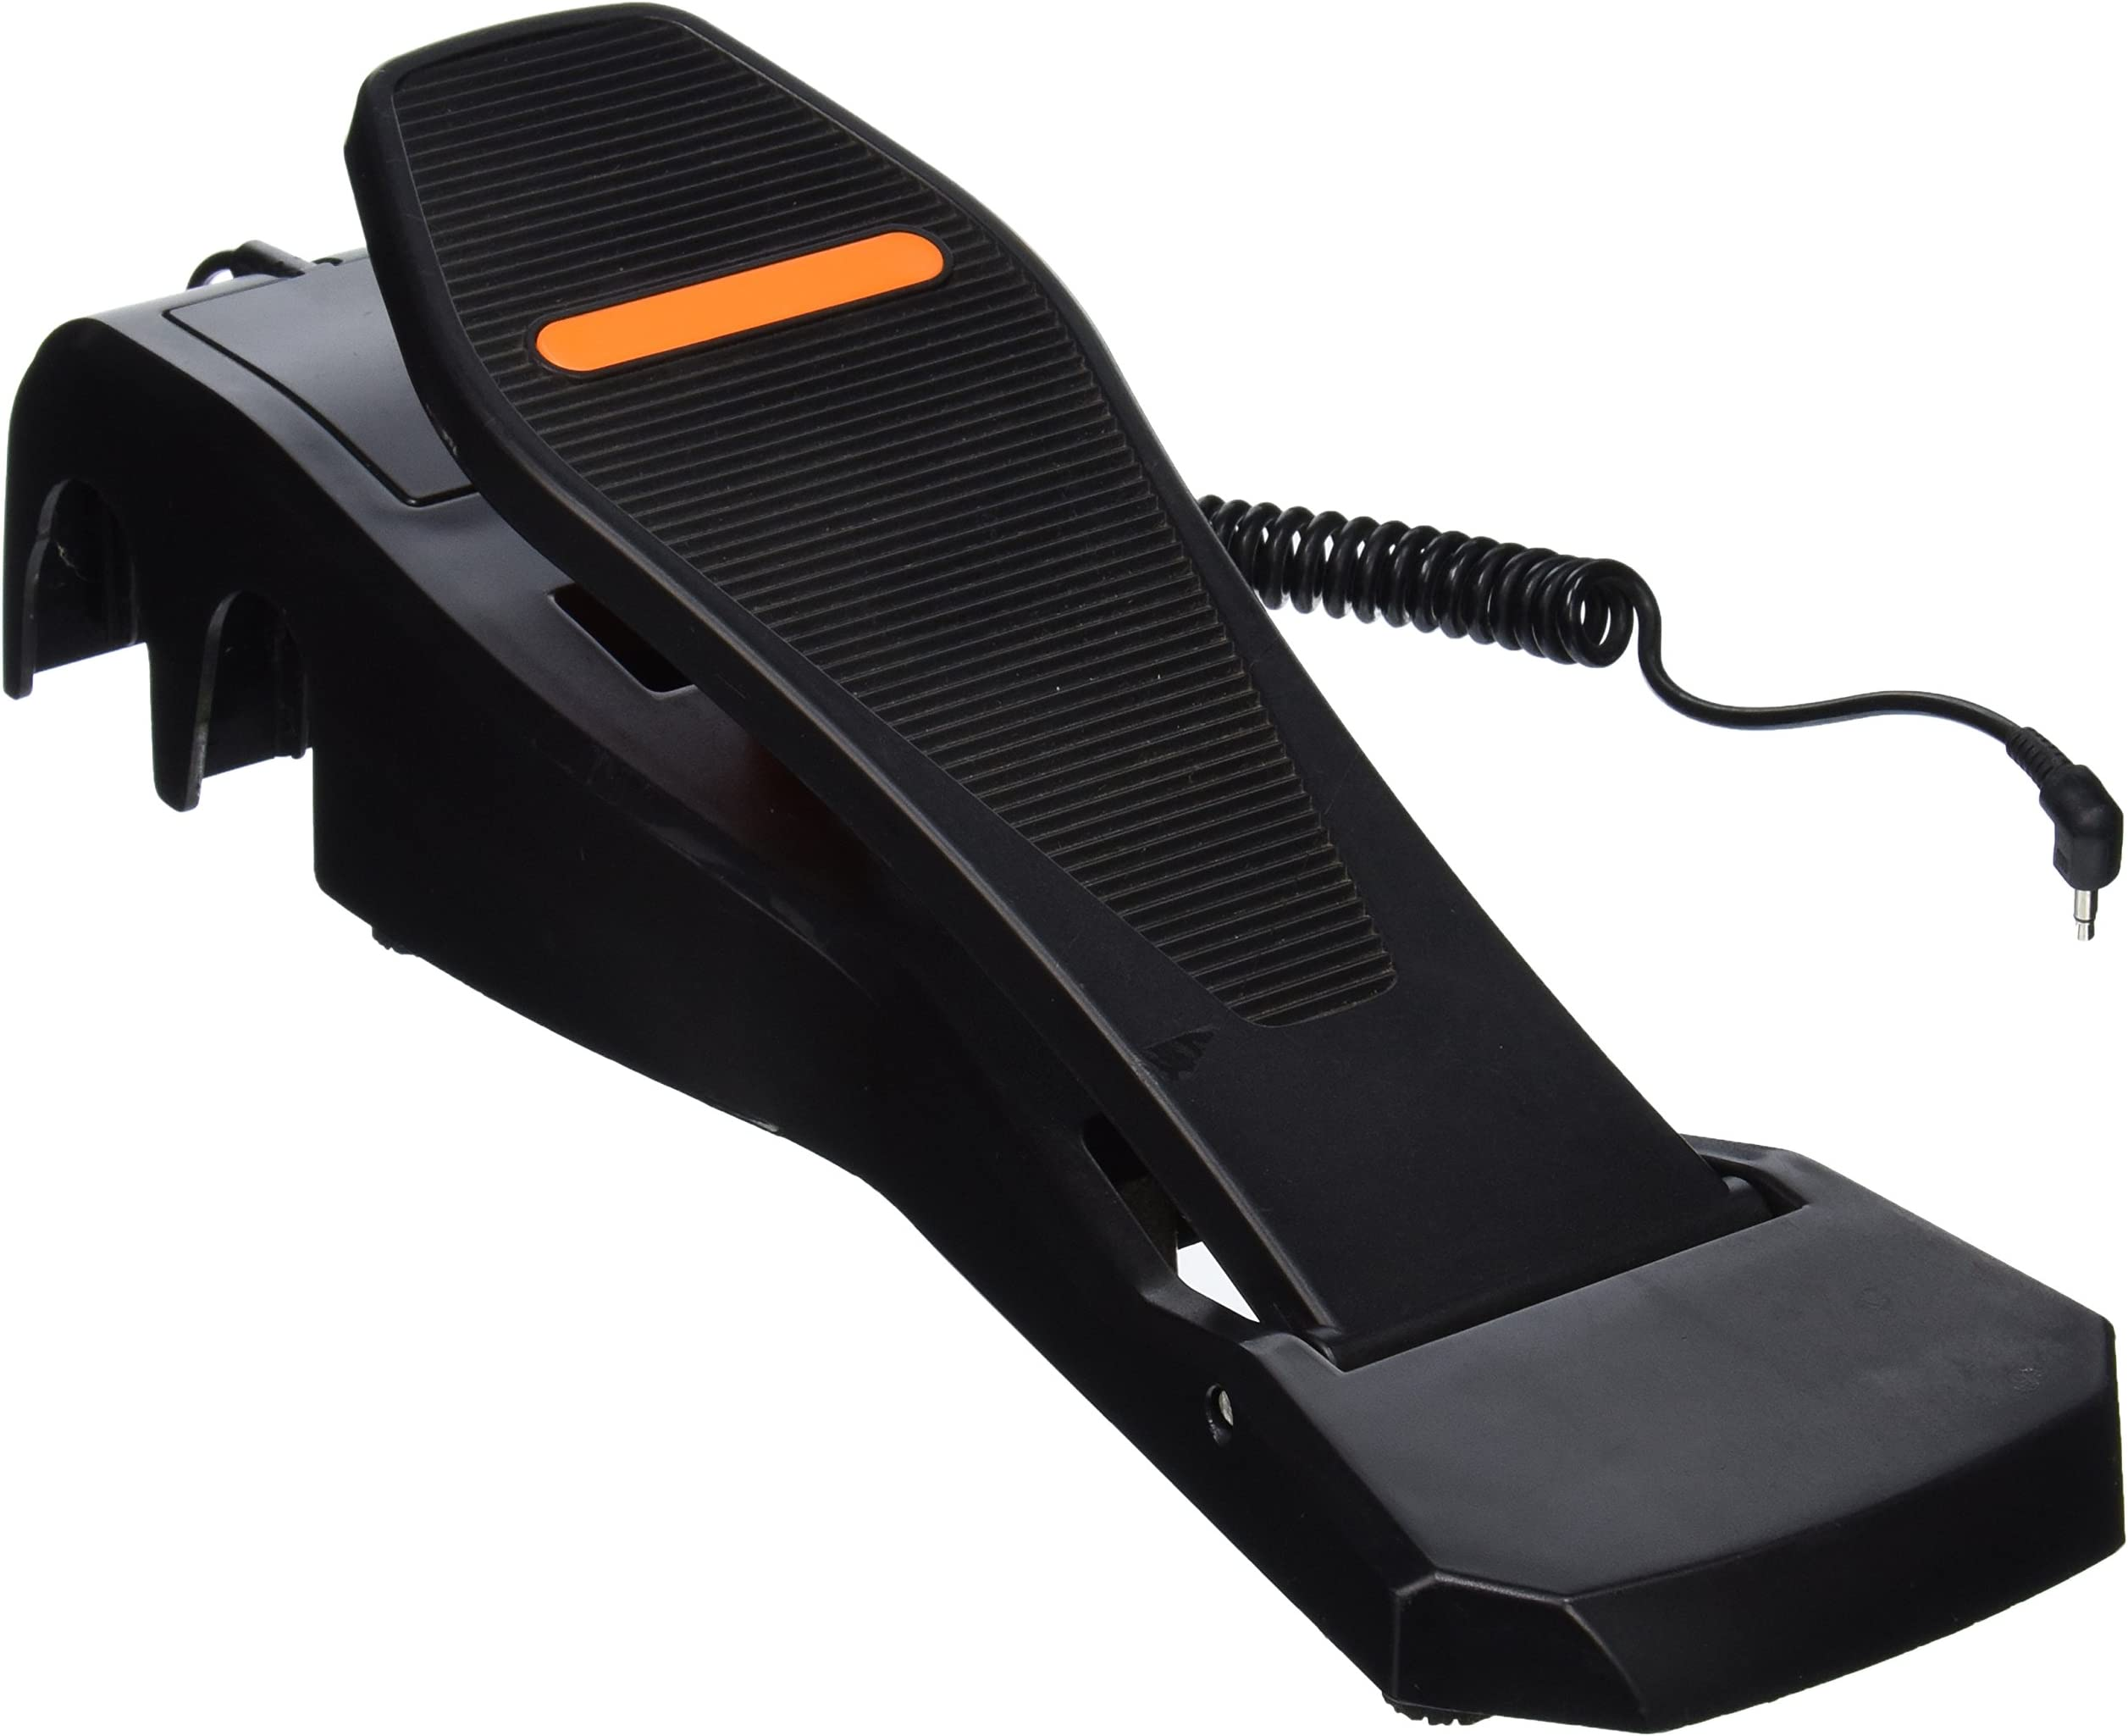 Amazon com: Rock Band Replacement Drum Pedal: Video Games